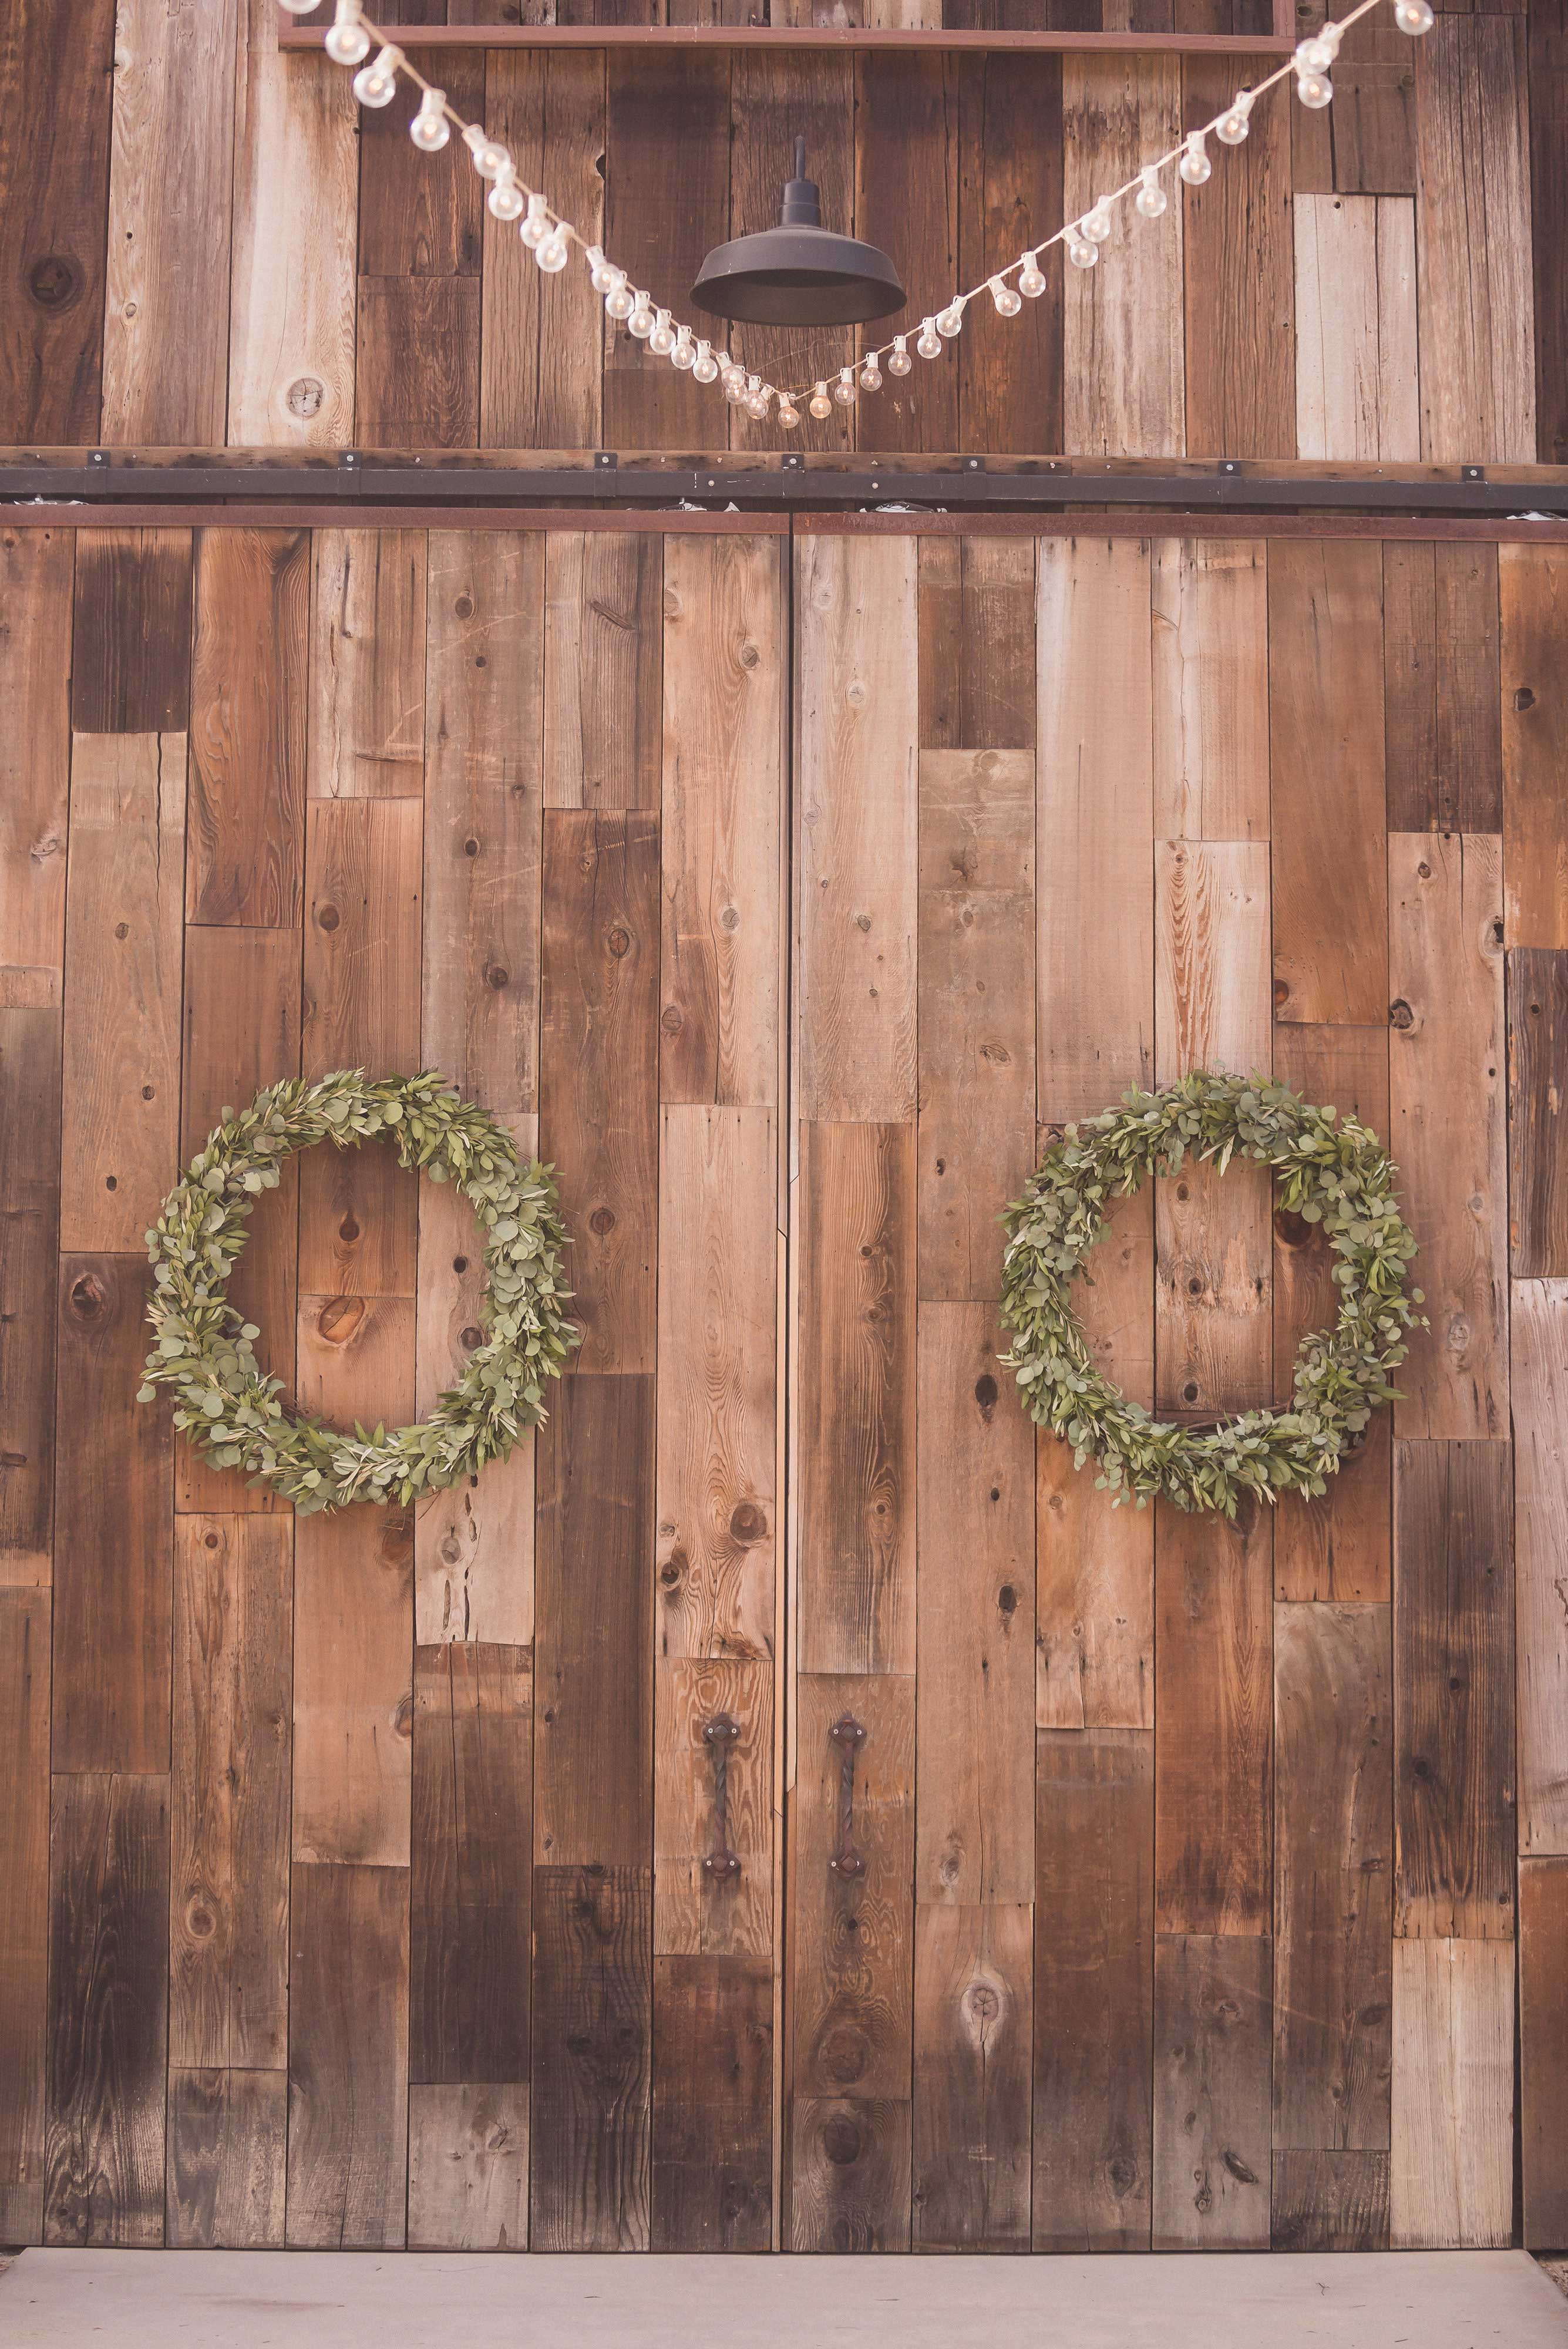 11 Fun And Festive Wreath Design Styles For Your Wedding